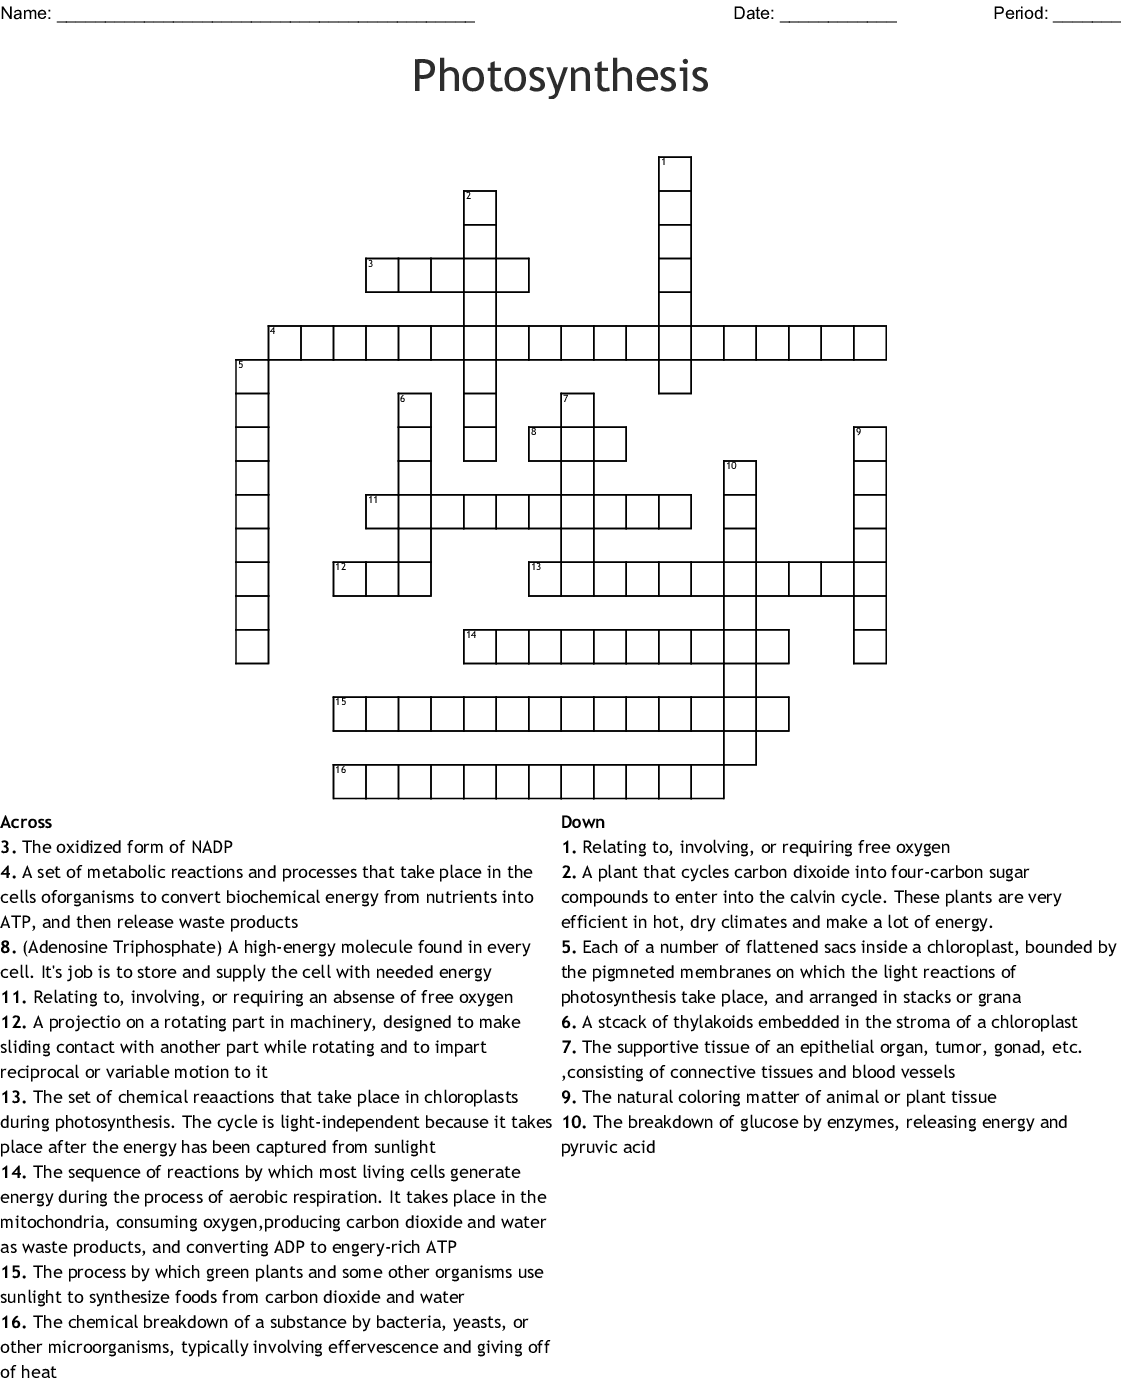 Ch 8 Photosynthesis Crossword